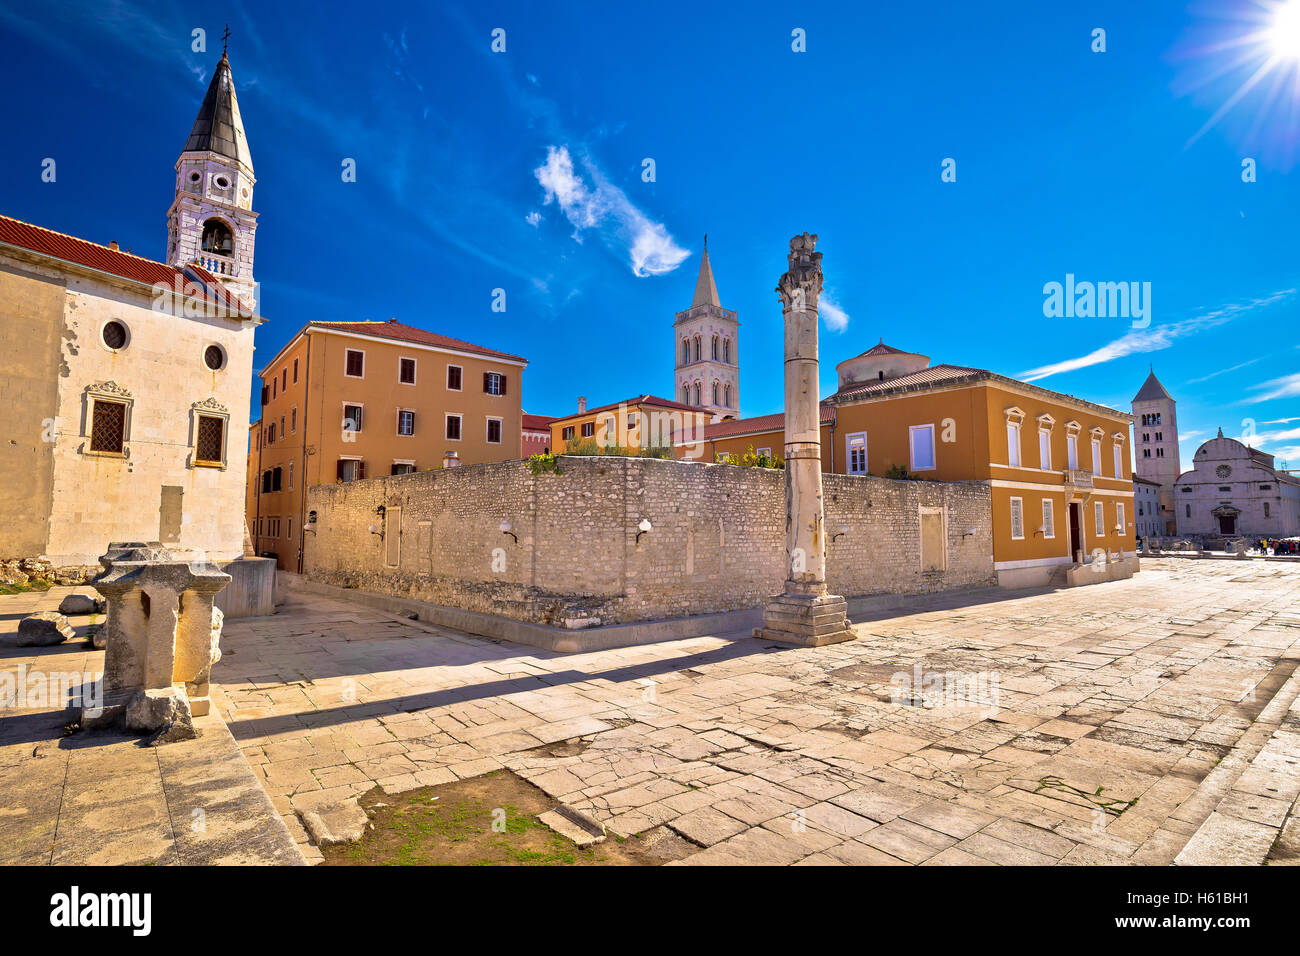 Ancient landmarks of Zadar view, Dalmatia, Croatia - Stock Image